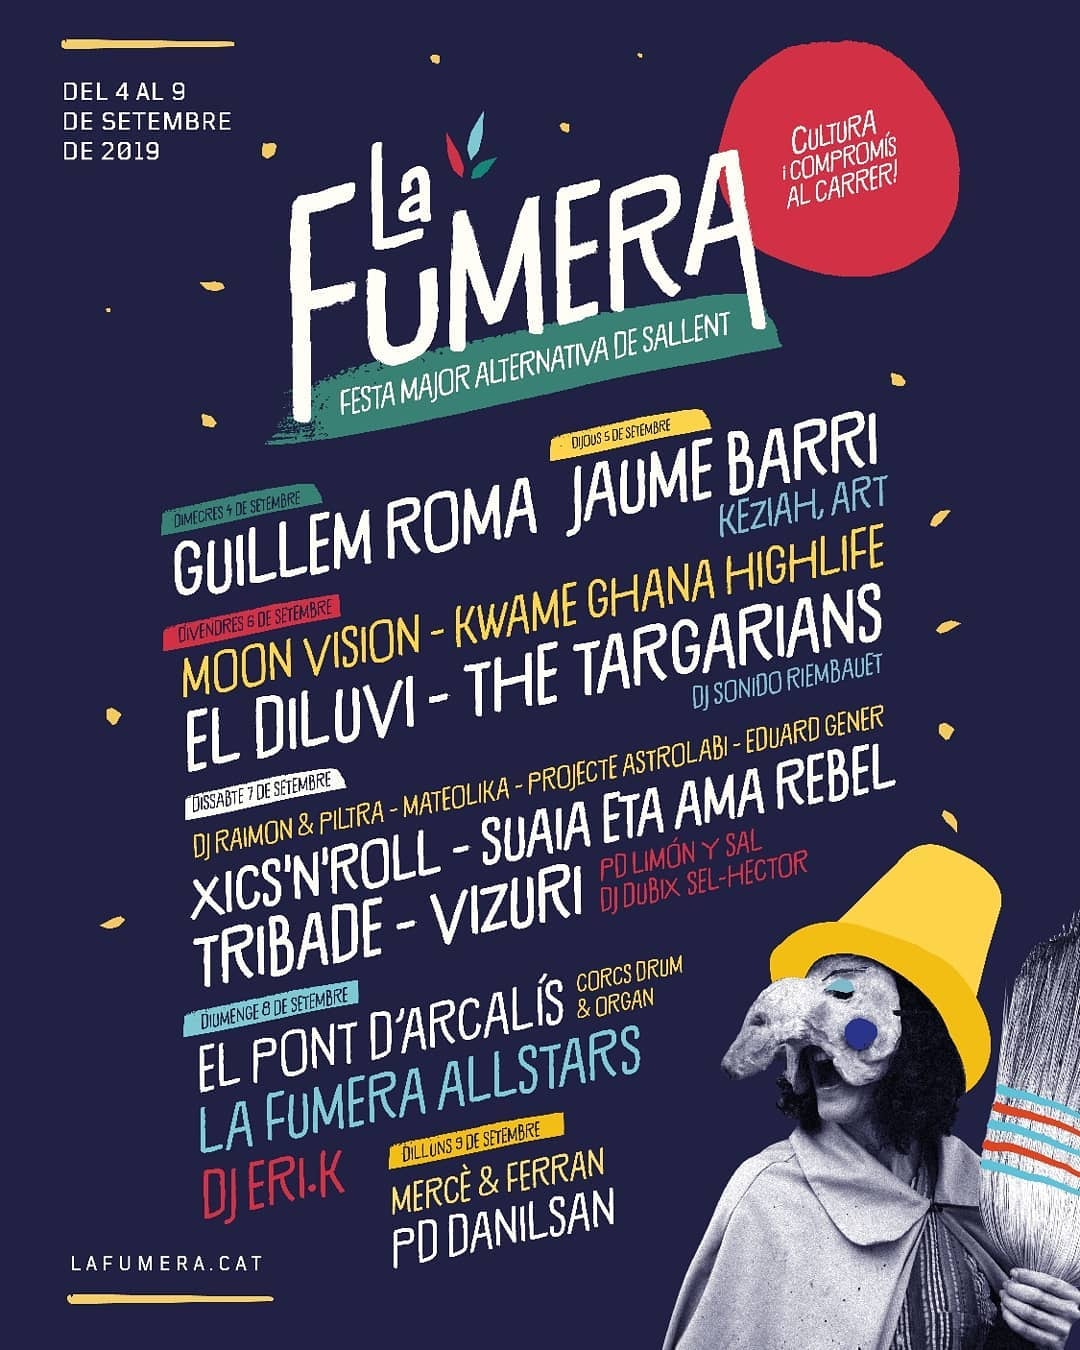 La Fumera - Festa Major Alternativa de Sallent 2019